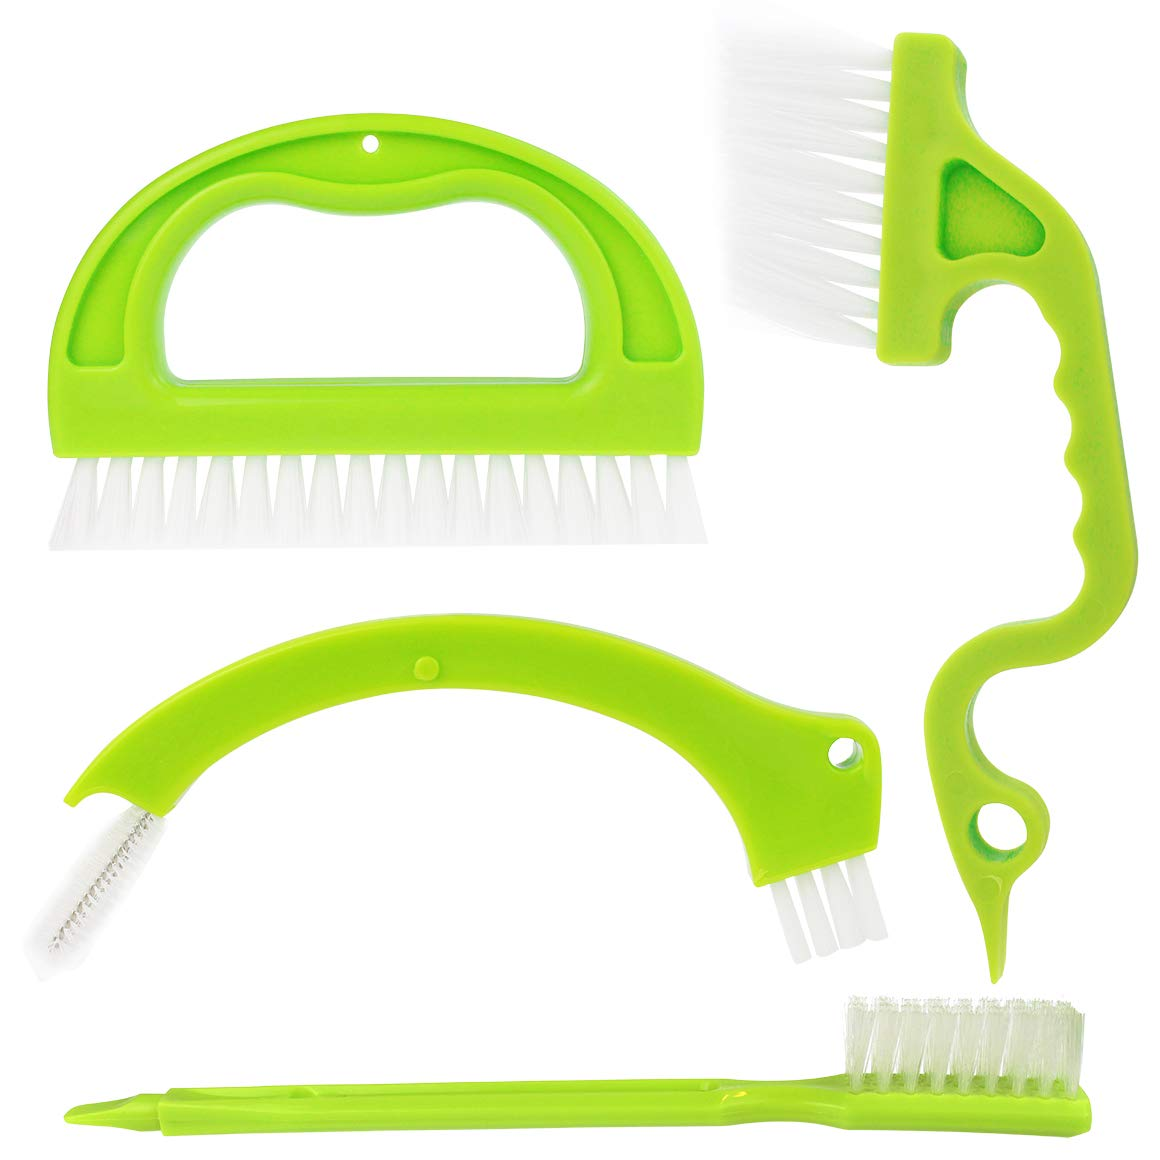 4 pcs Grout Cleaner Brush,cnomg Tile Joint Scrubber Brush with Nylon Bristles Great Use for Deep Cleaning Bathroom, Kitchen and Household Green